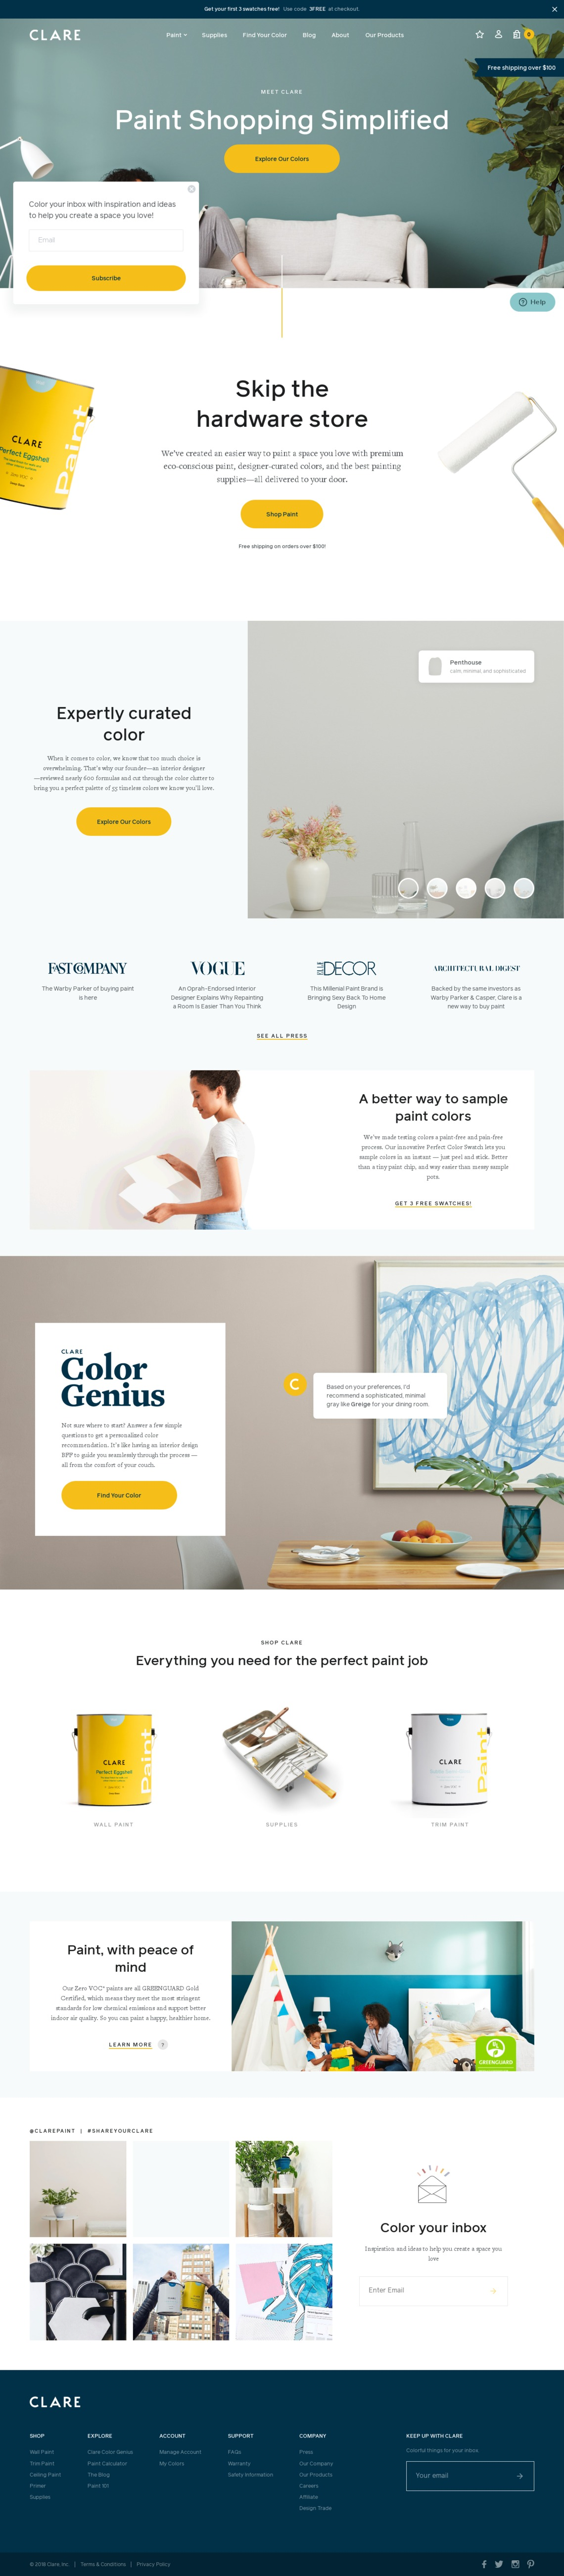 Simply Brilliant Color | Interior Paint & Supplies  | Clare